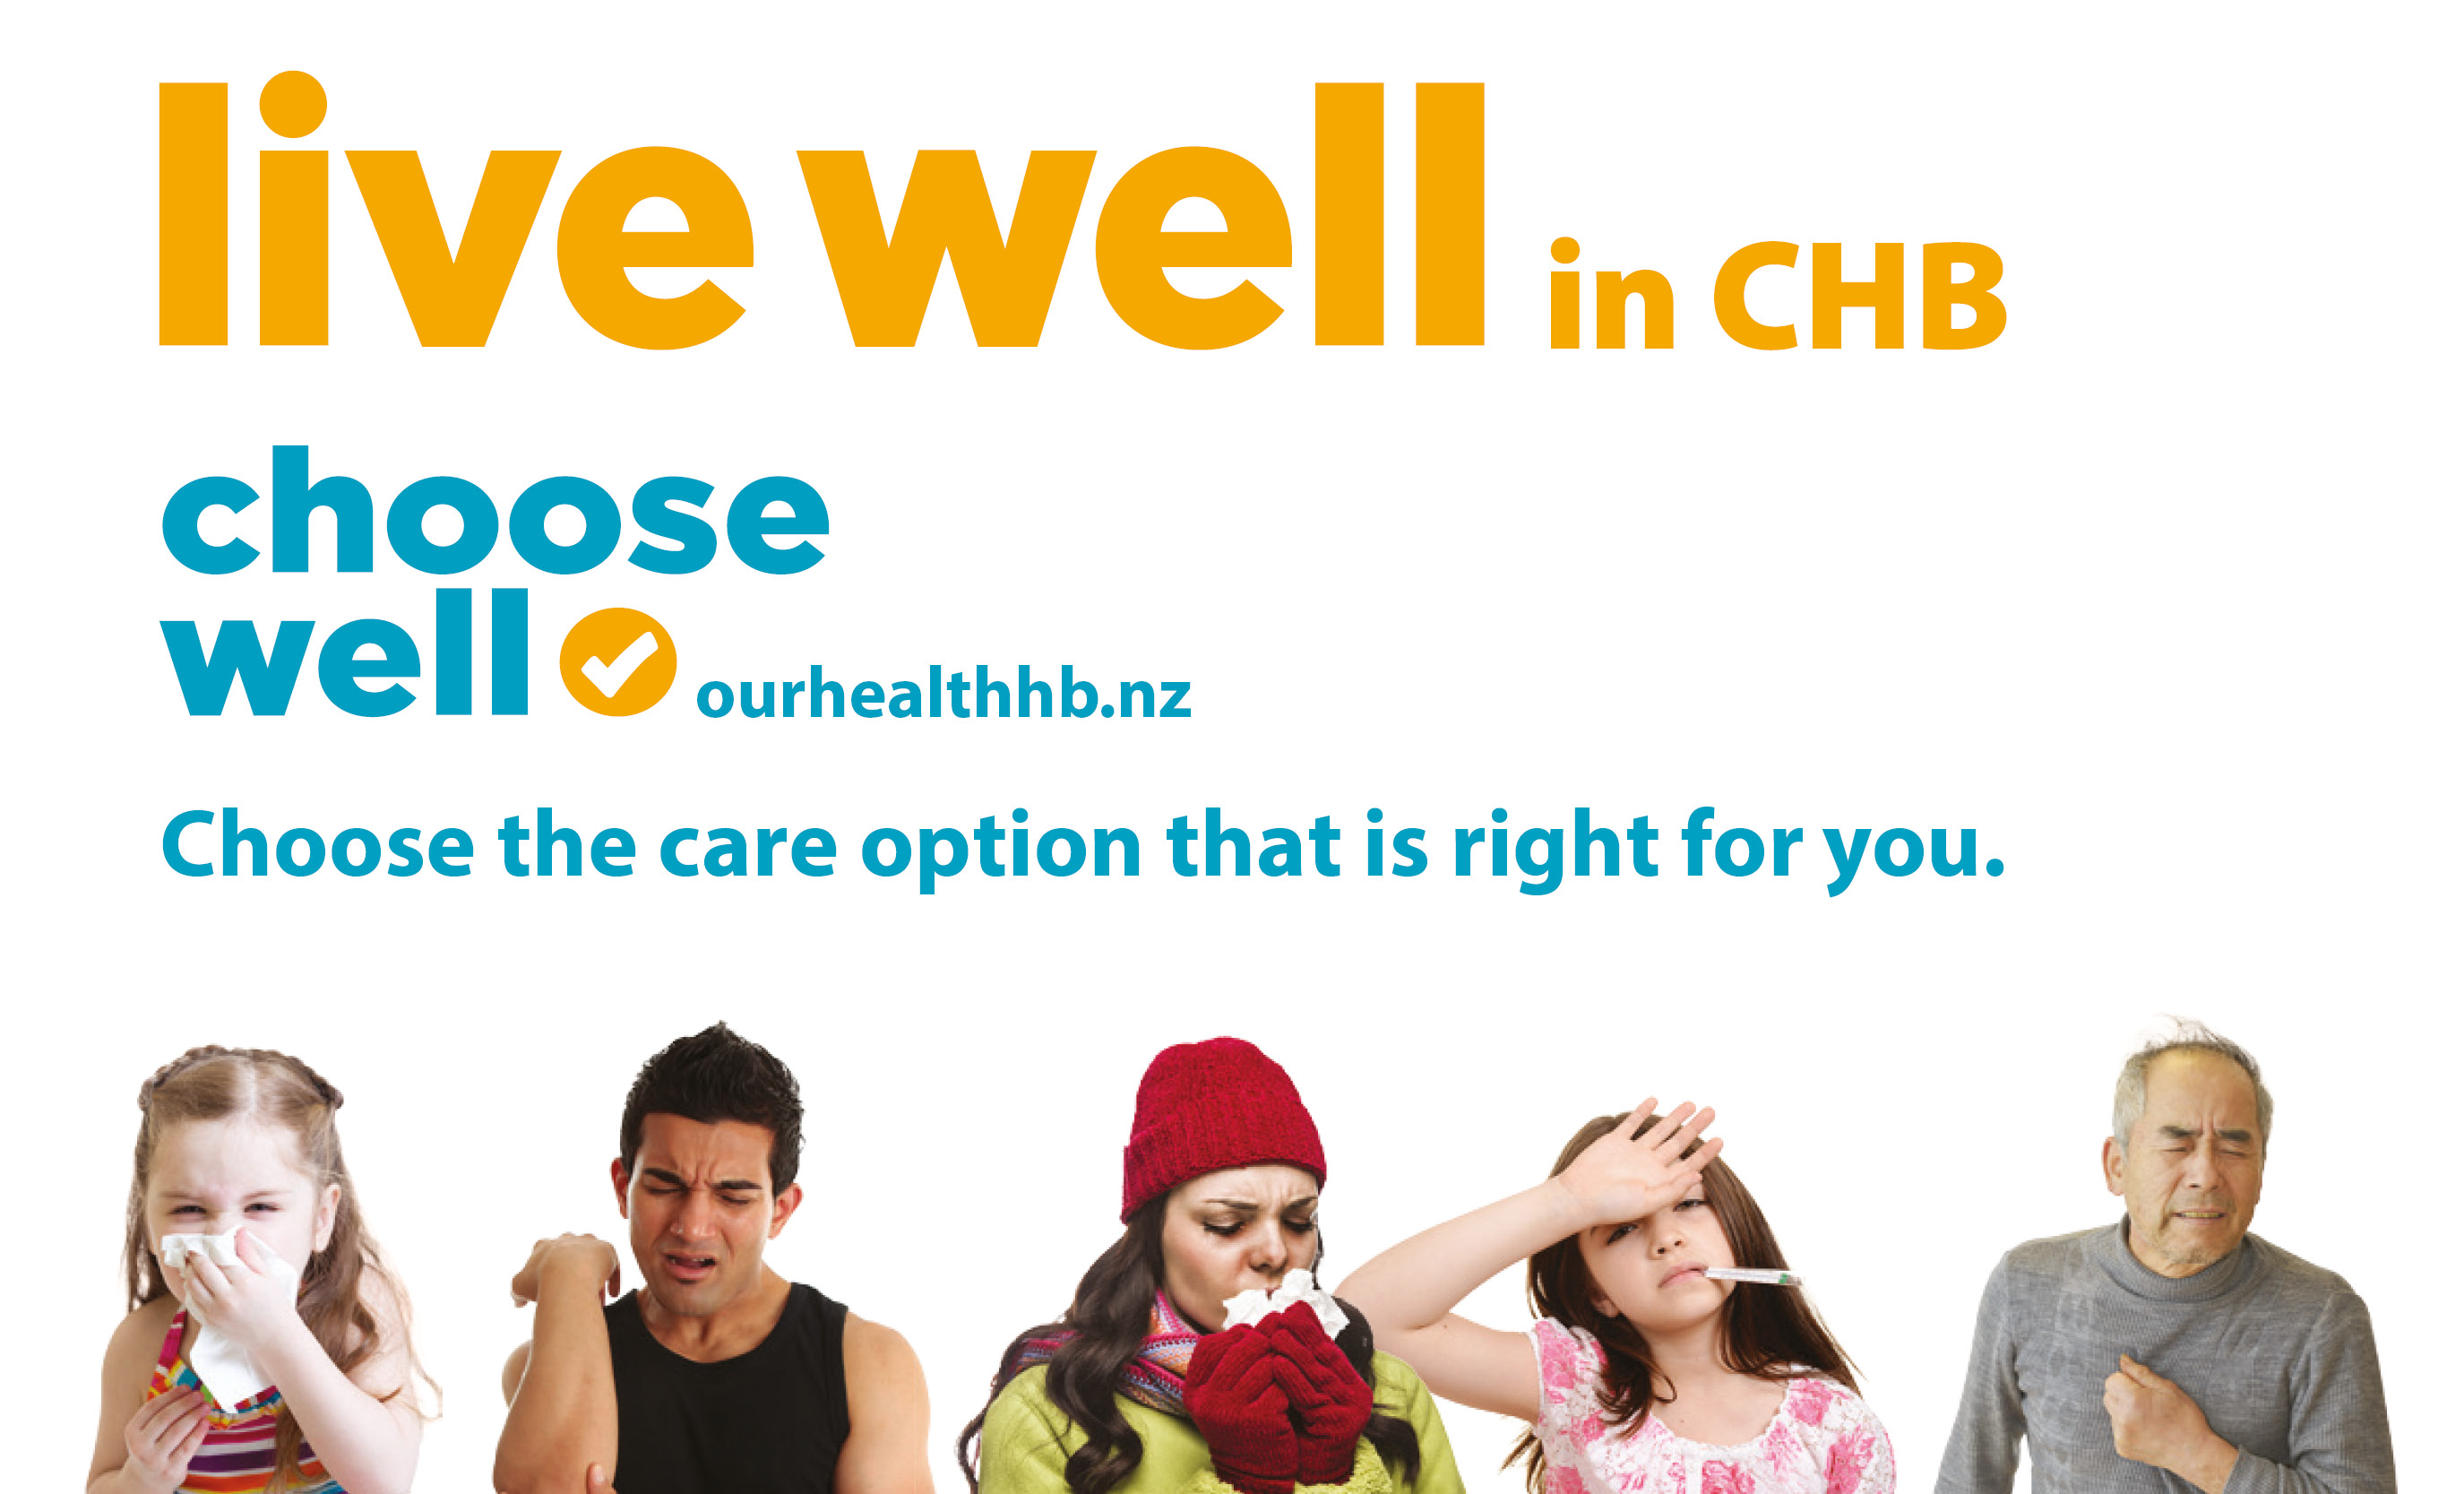 Live well in CHB carousel